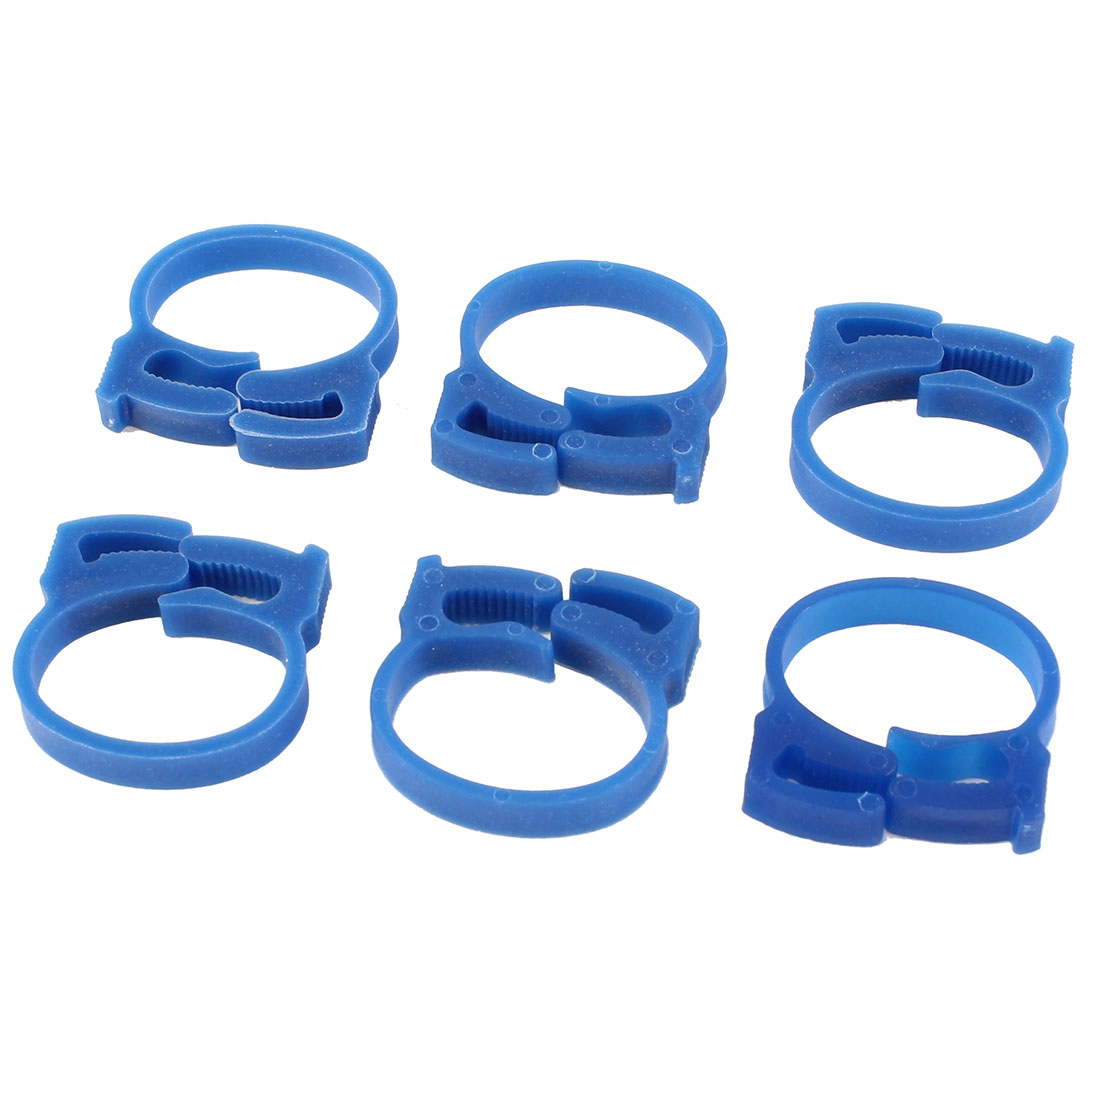 6 Pcs Blue Plastic 26mm Wire Cord Ring Clamp Tie Cable Clip Organizer